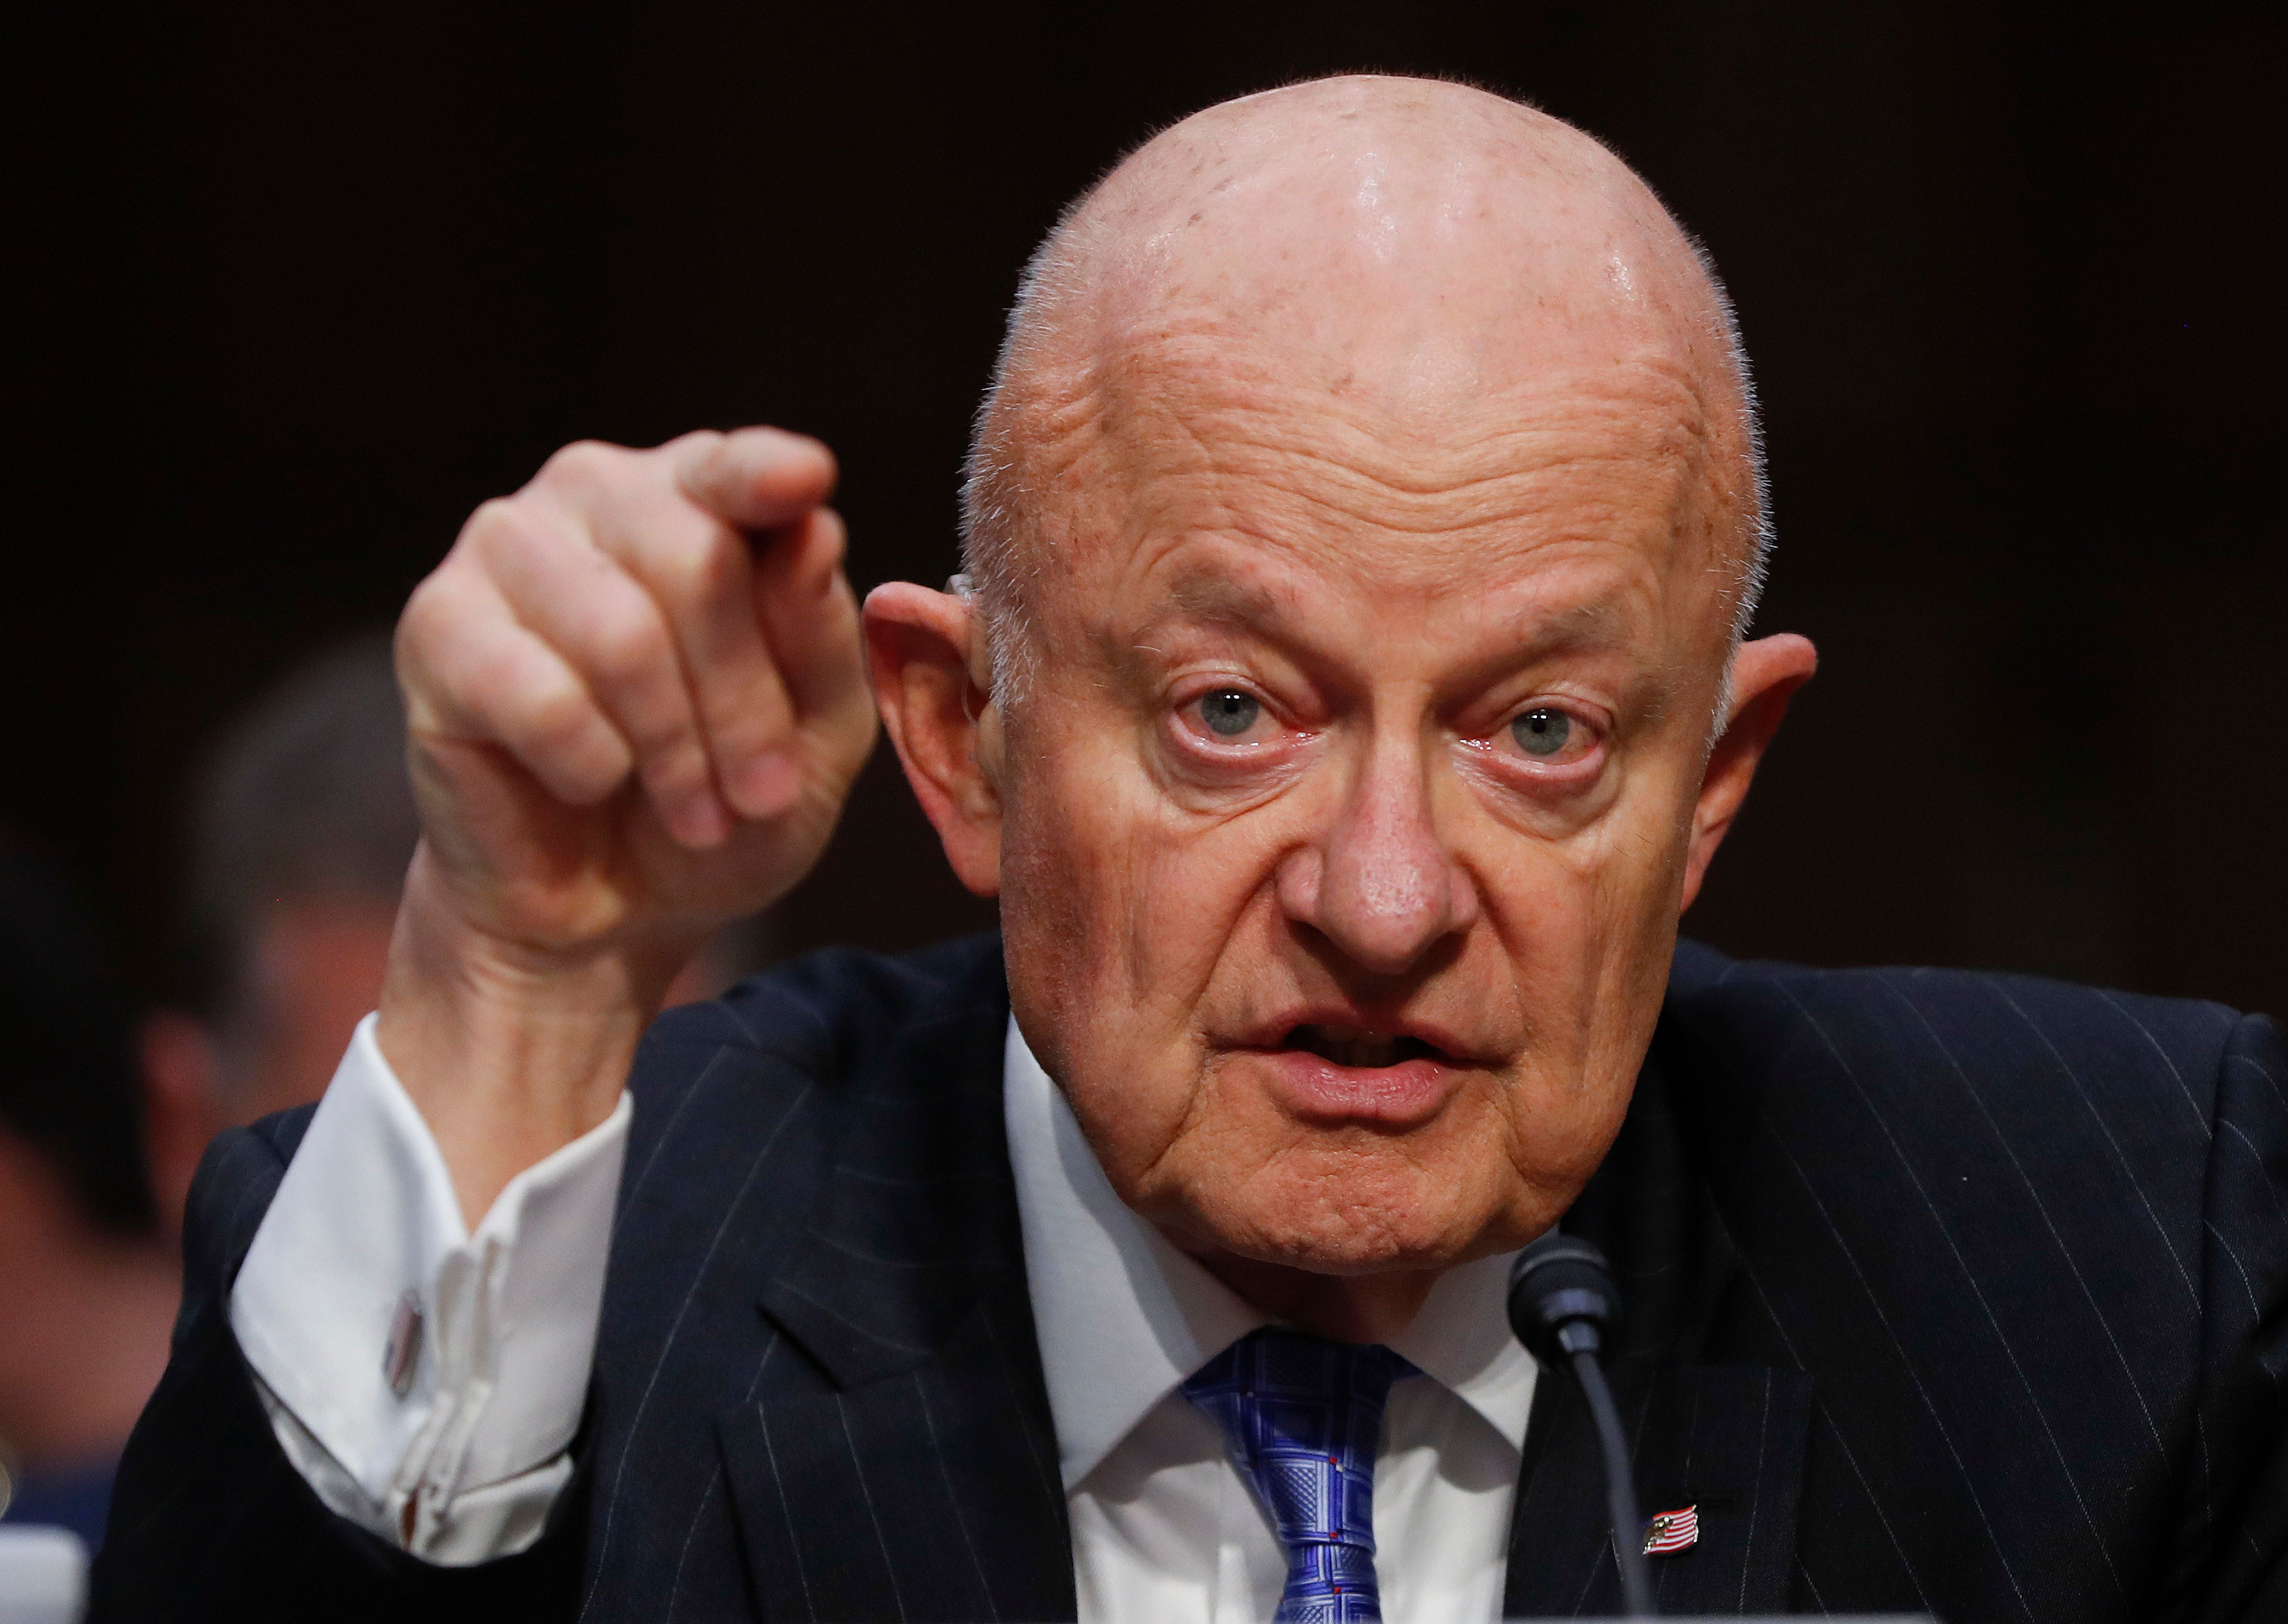 El ex director de Inteligencia Nacional  James Clapper declara en el Congreso en Washington el 8 de mayo del 2017. (AP Photo/Pablo Martinez Monsivais, File)